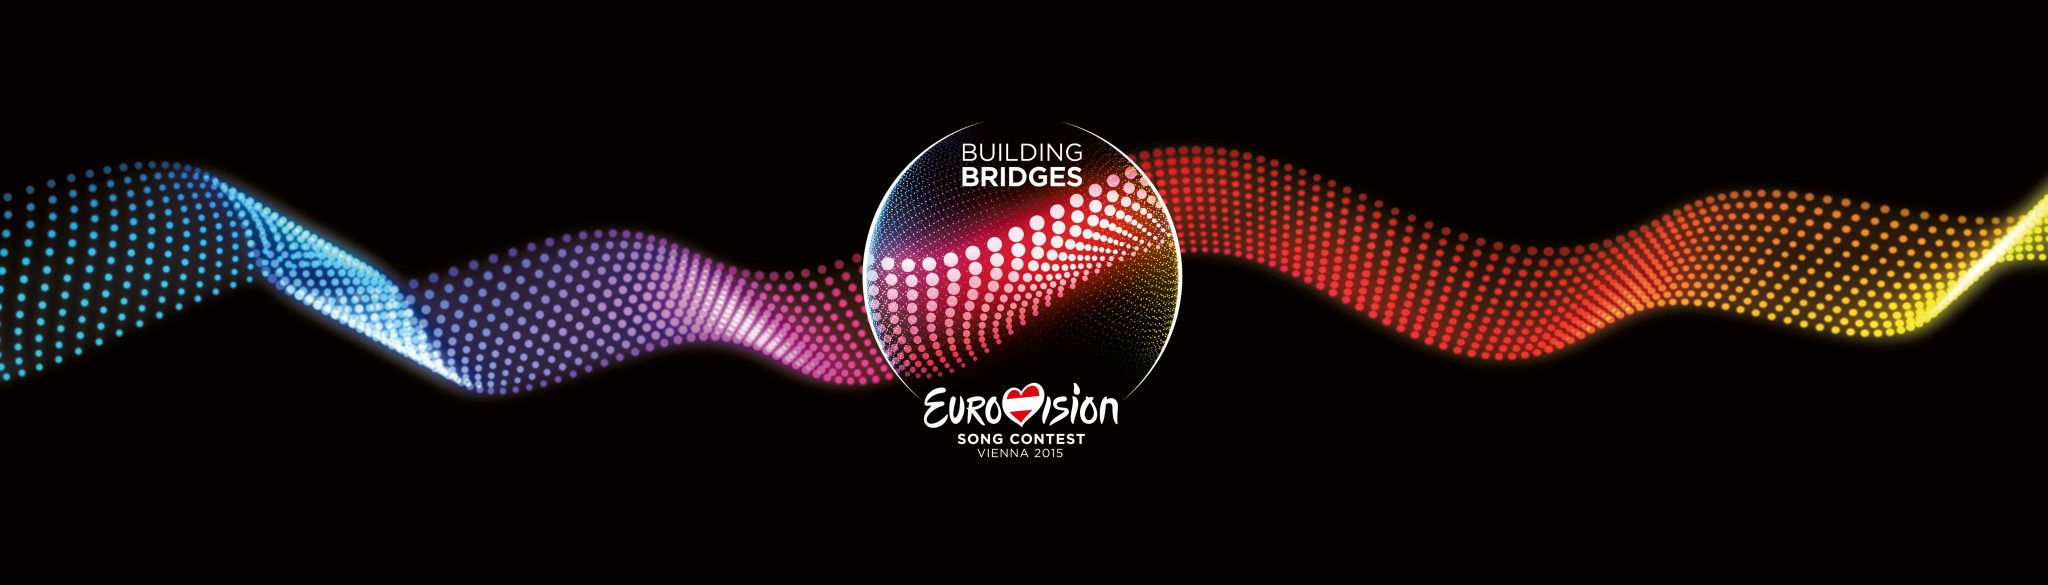 2015 60th eurovision song contest escape news. Black Bedroom Furniture Sets. Home Design Ideas